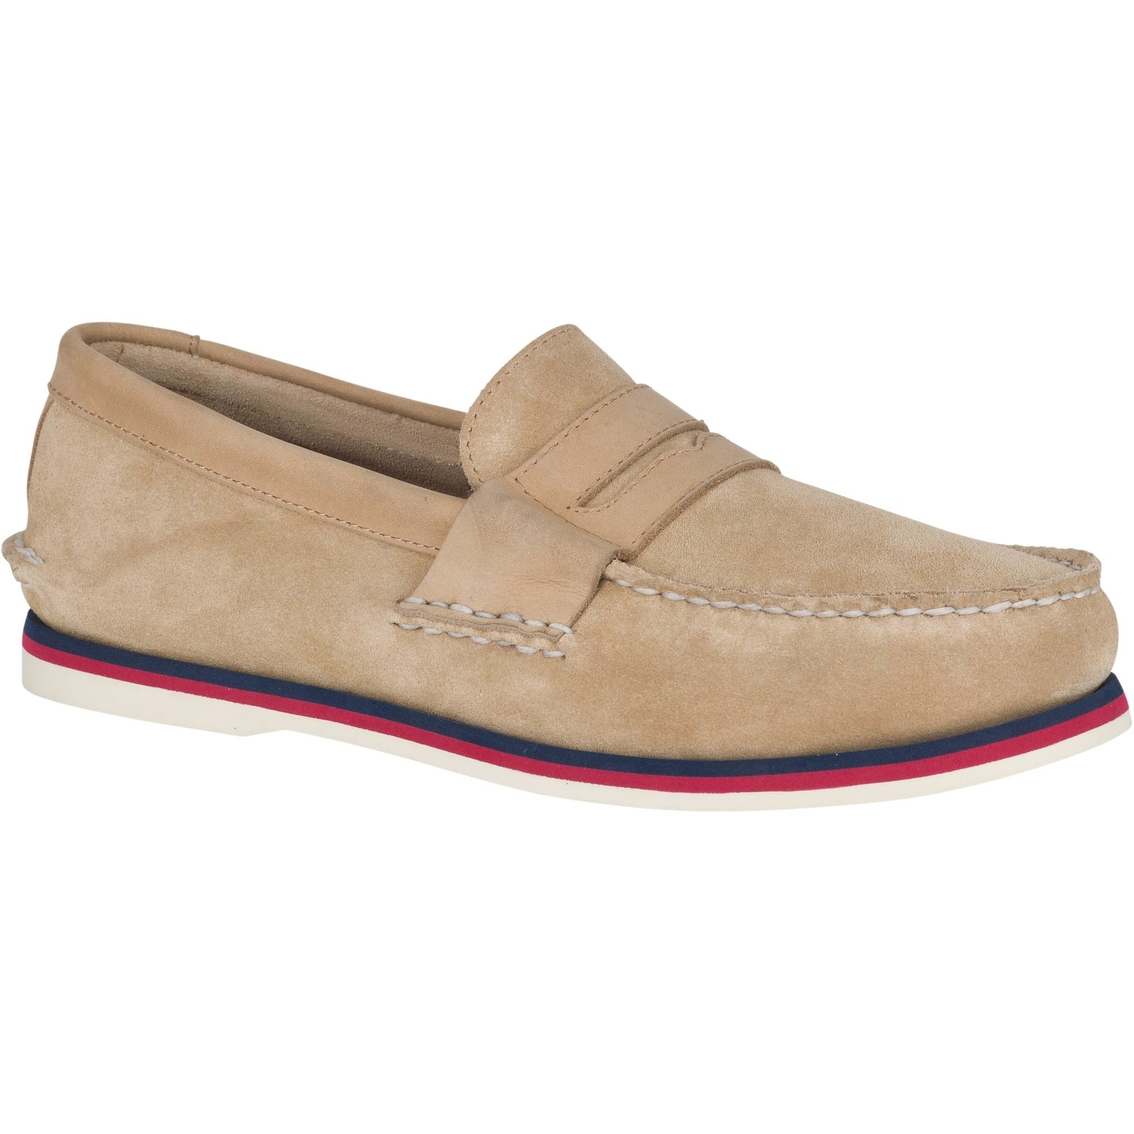 83f2120a5100 Sperry Ao Penny Nautical Tan Loafers